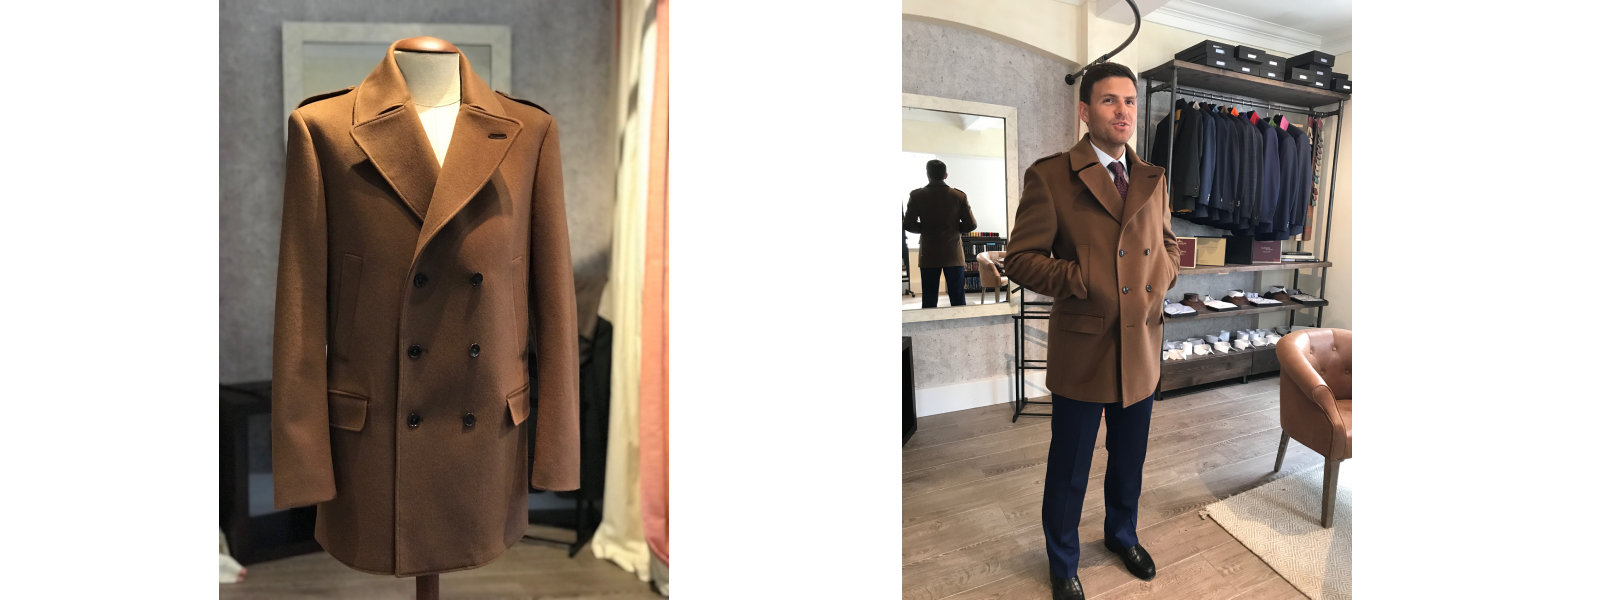 brown overcoat bespoke made to measure tailor london